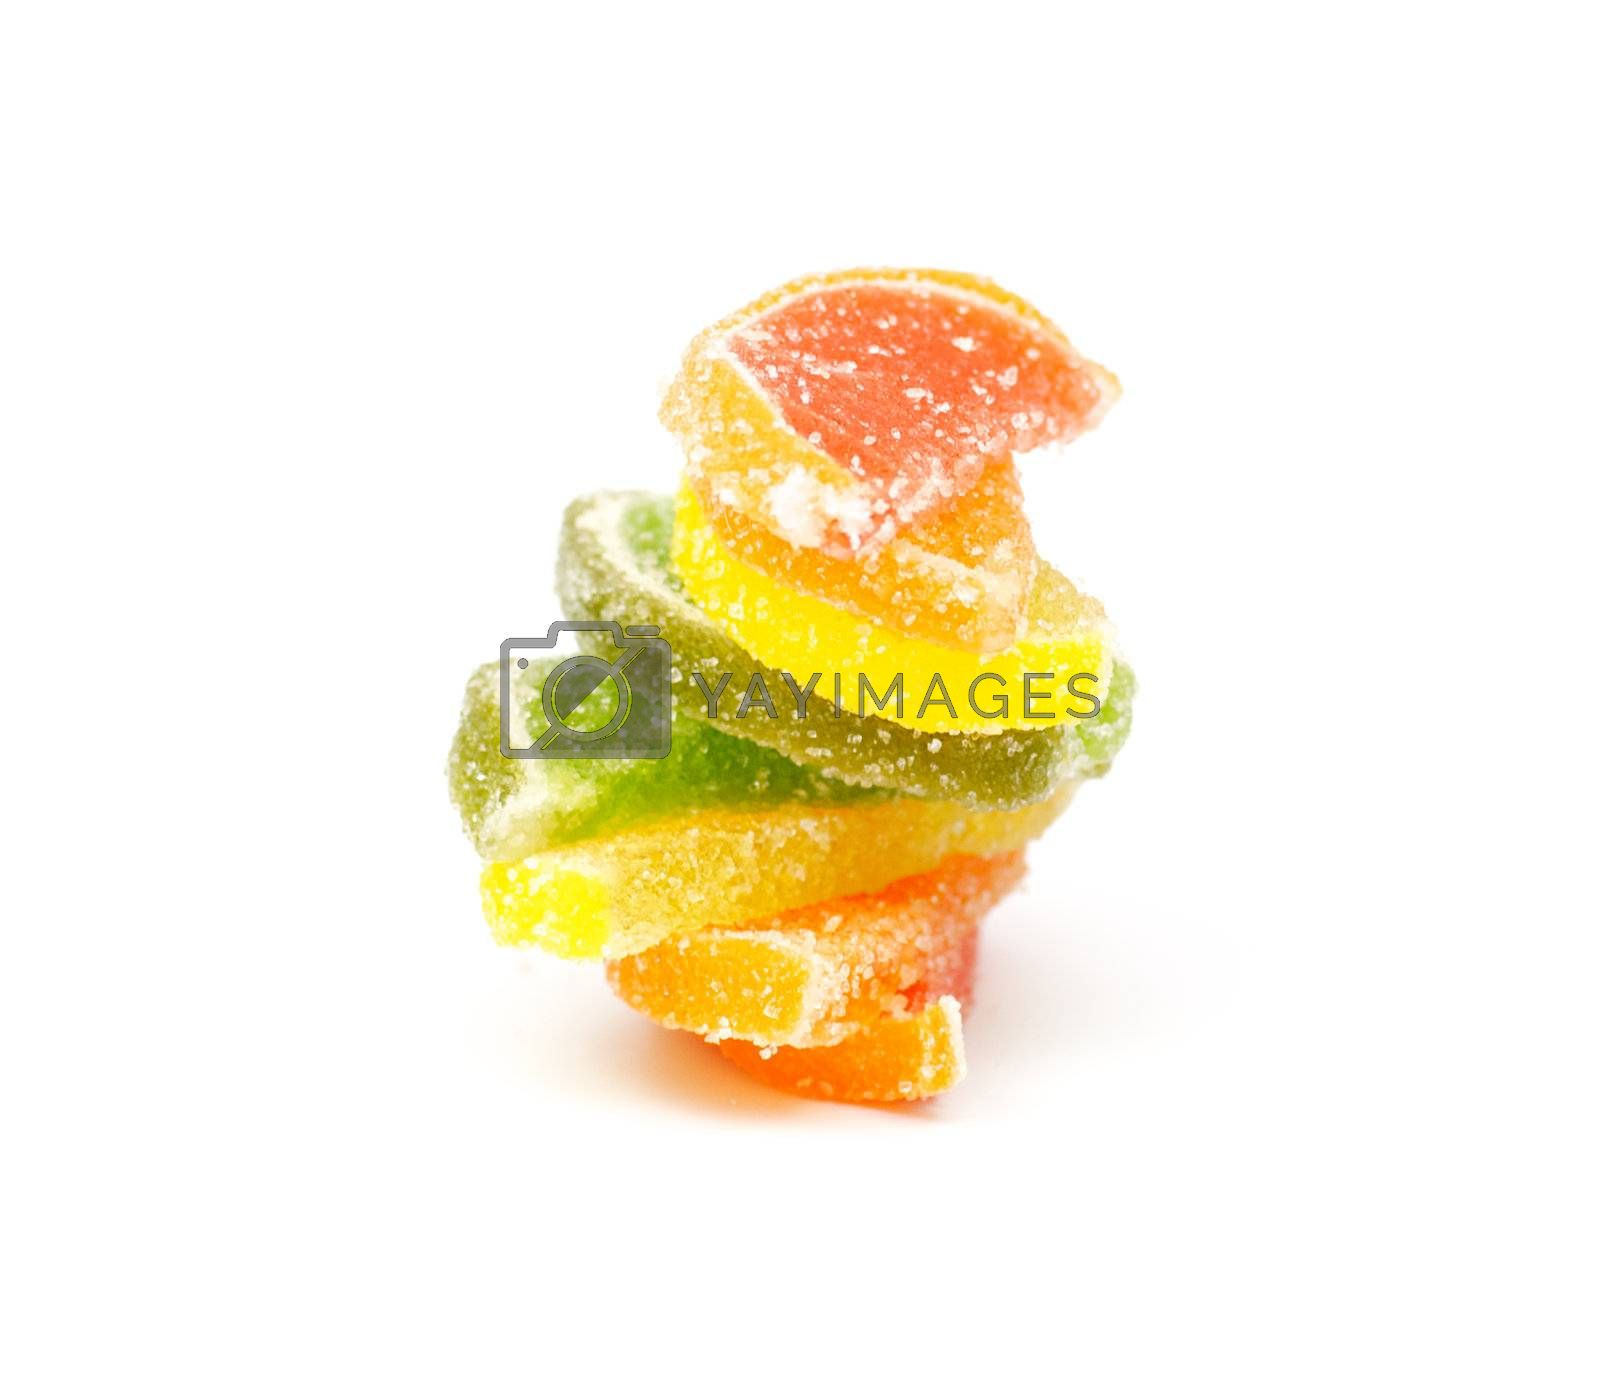 Multi colored fruit jelly candy on white background